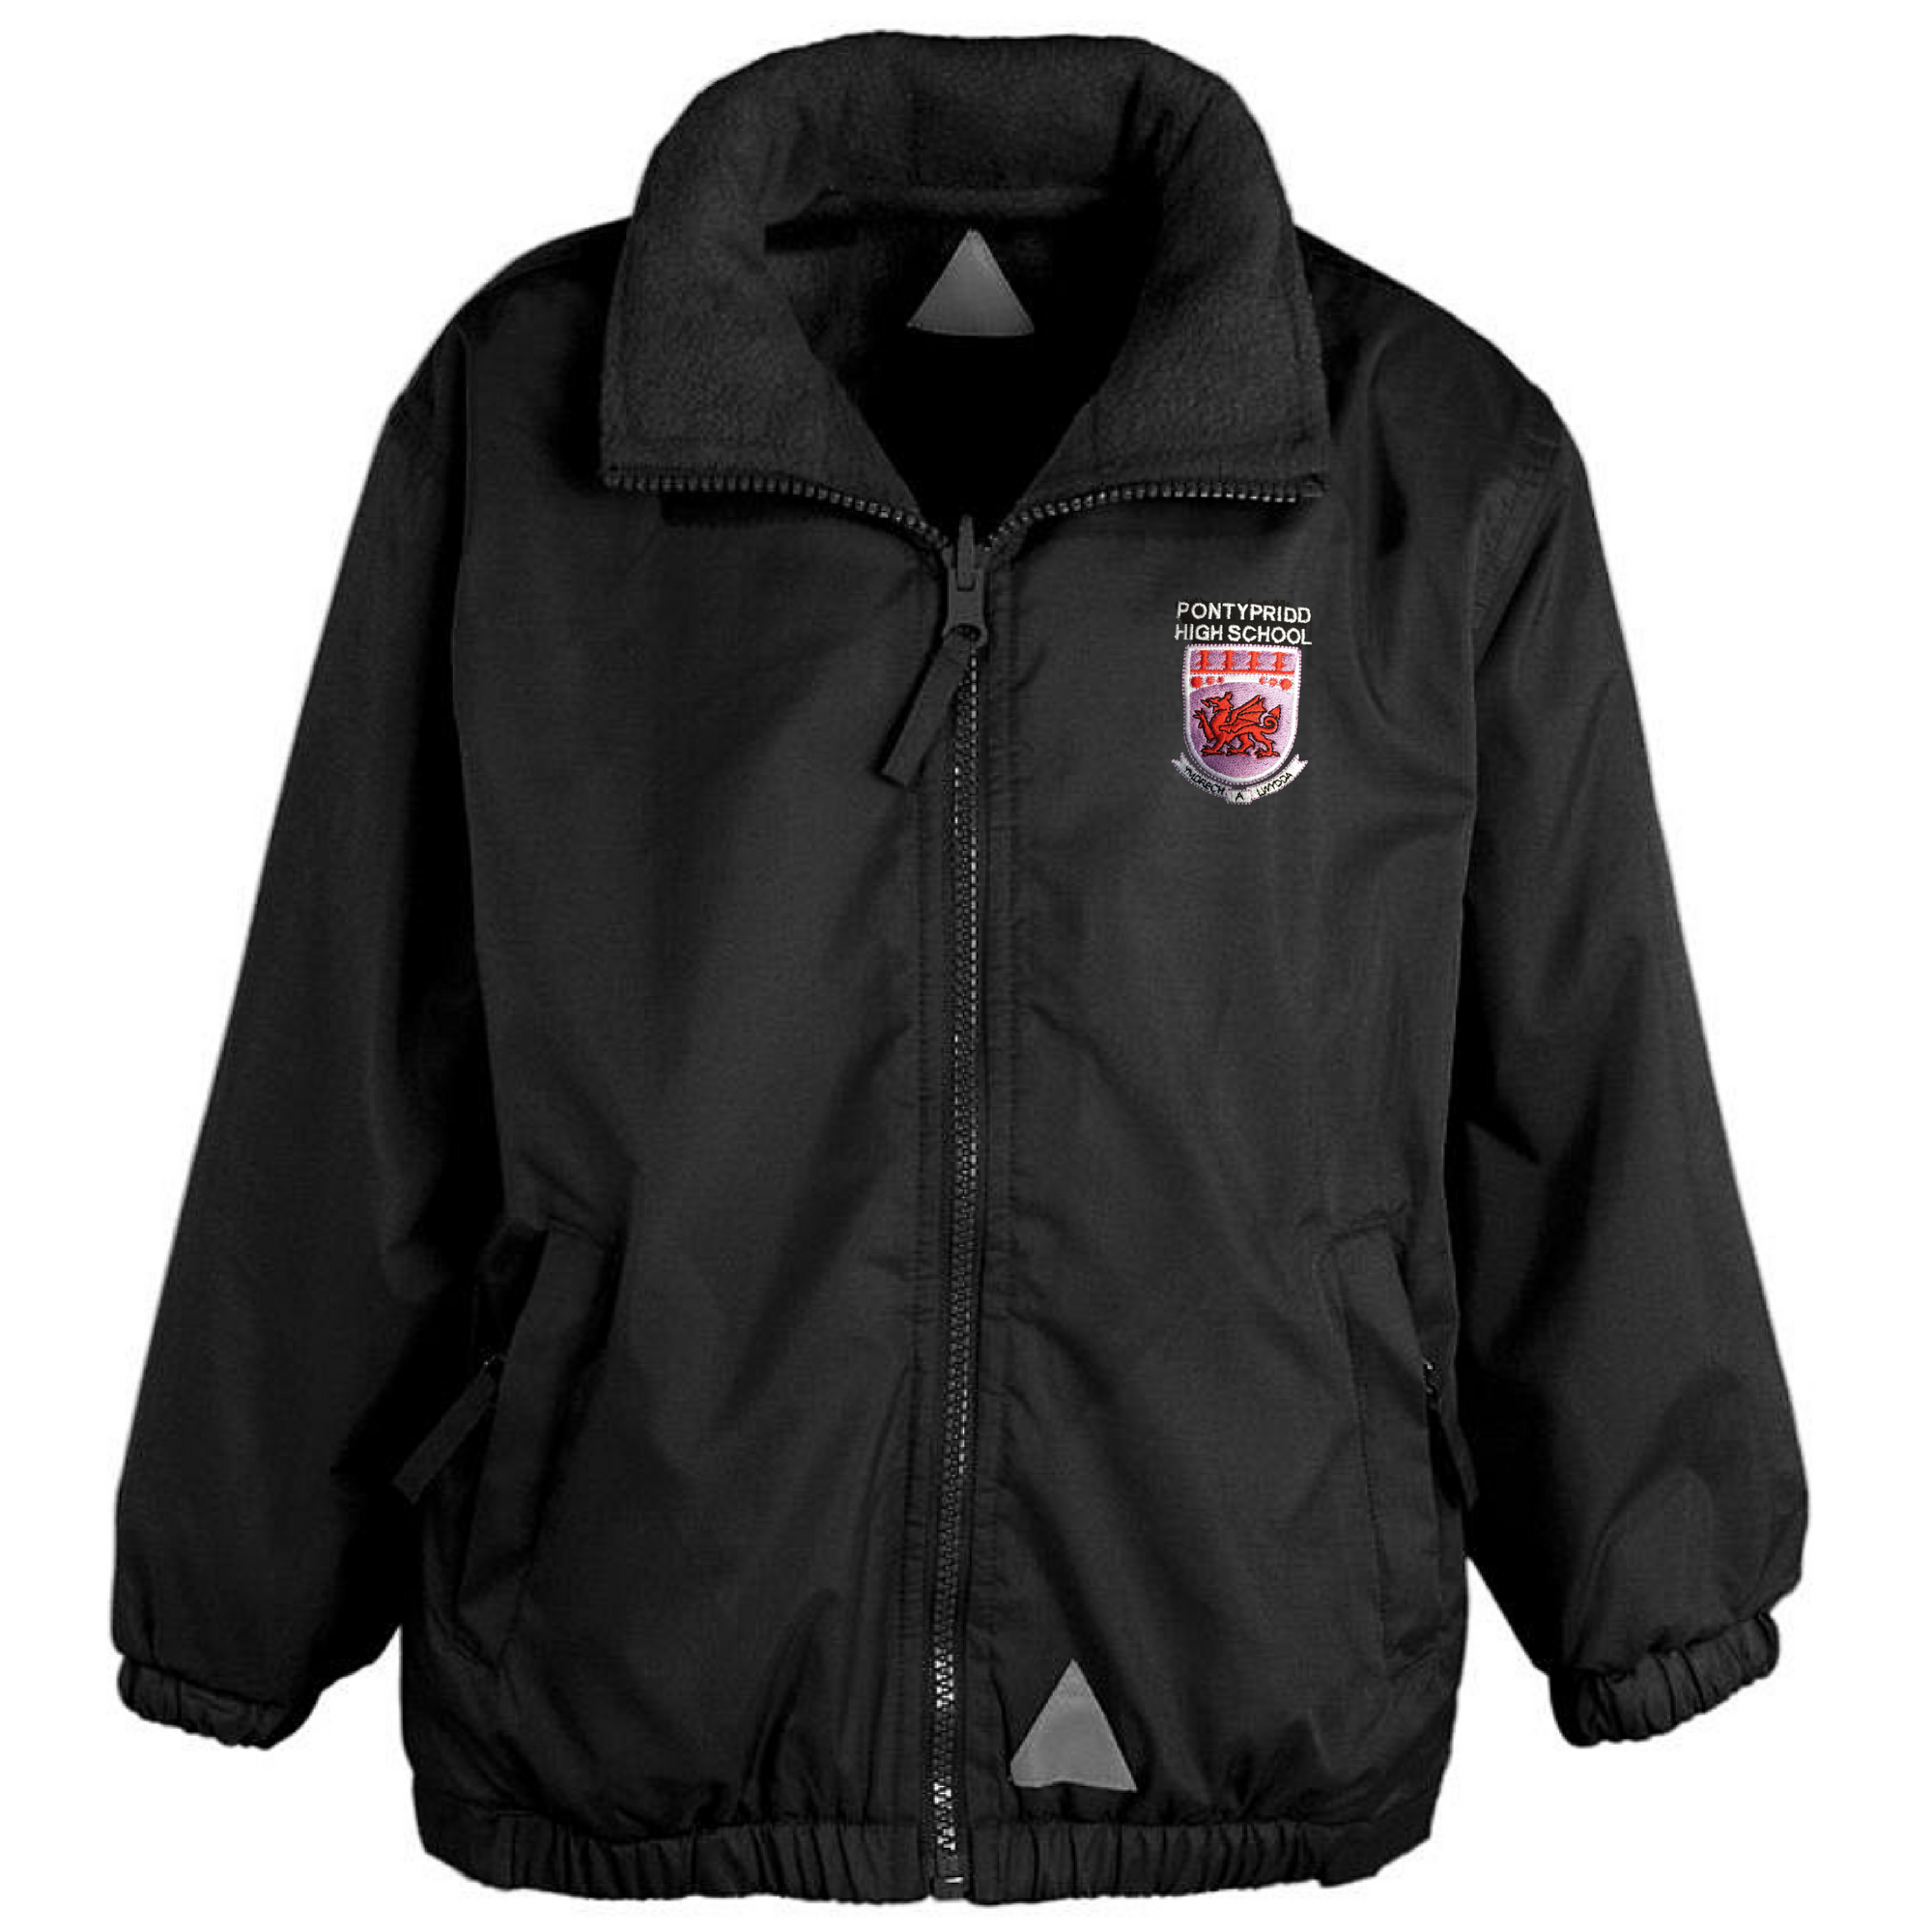 Pontypridd High School Black Mistral Jacket